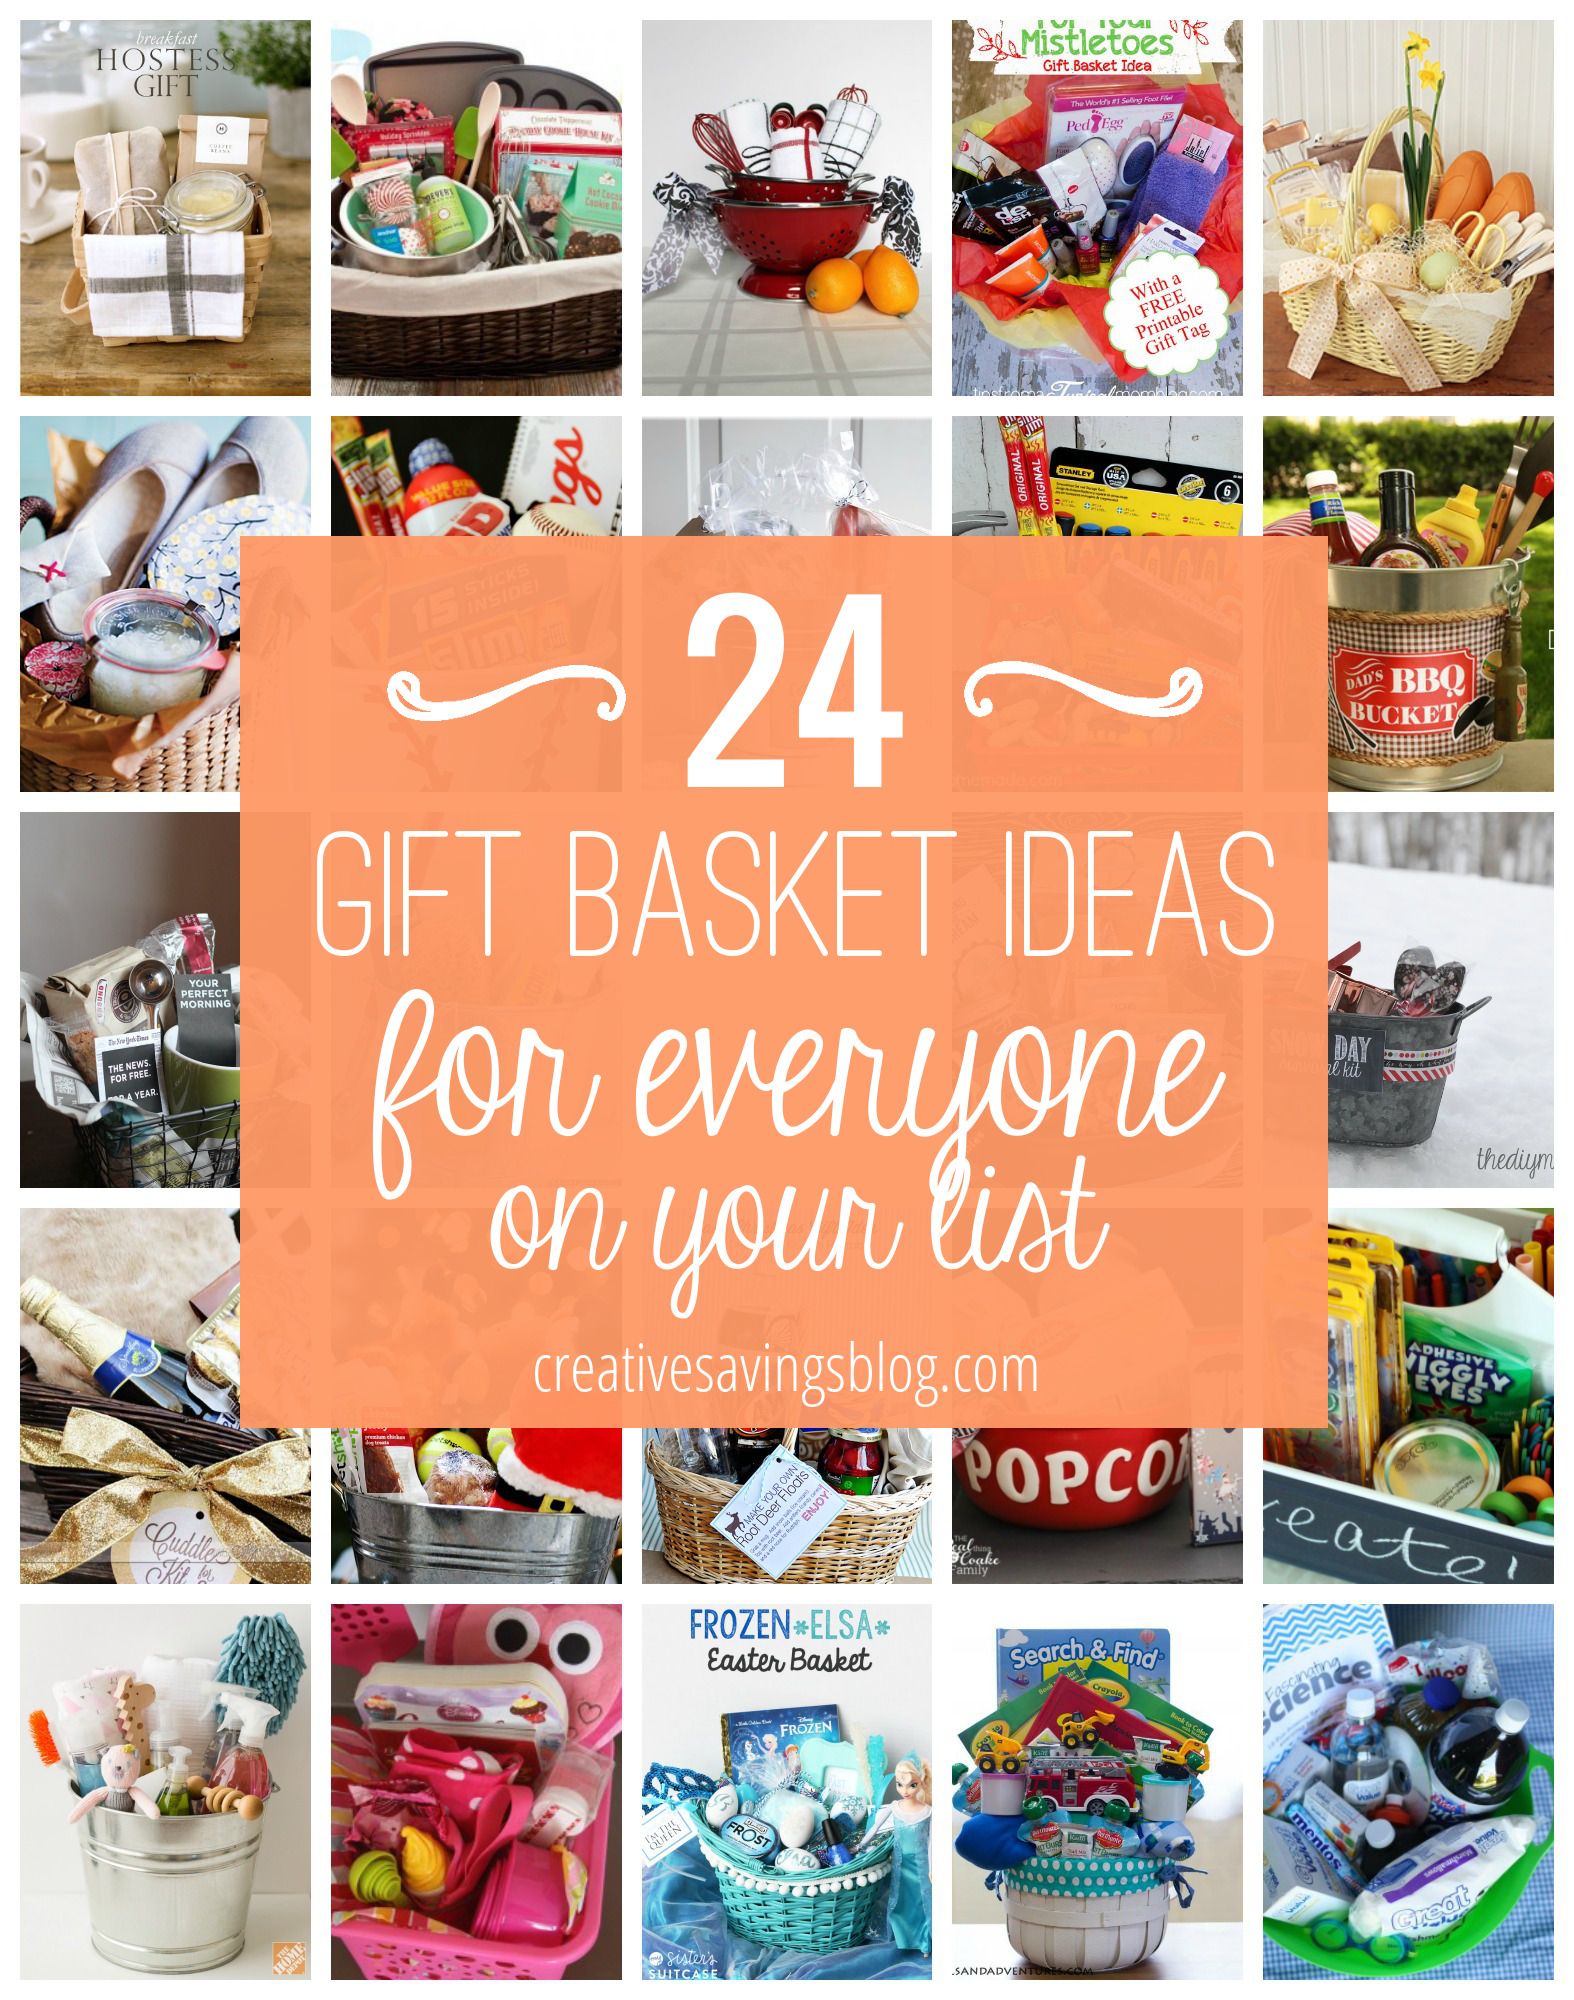 Diy gift basket ideas for everyone on your list these diy gift basket ideas make the perfect gifting option for any budget use the negle Images